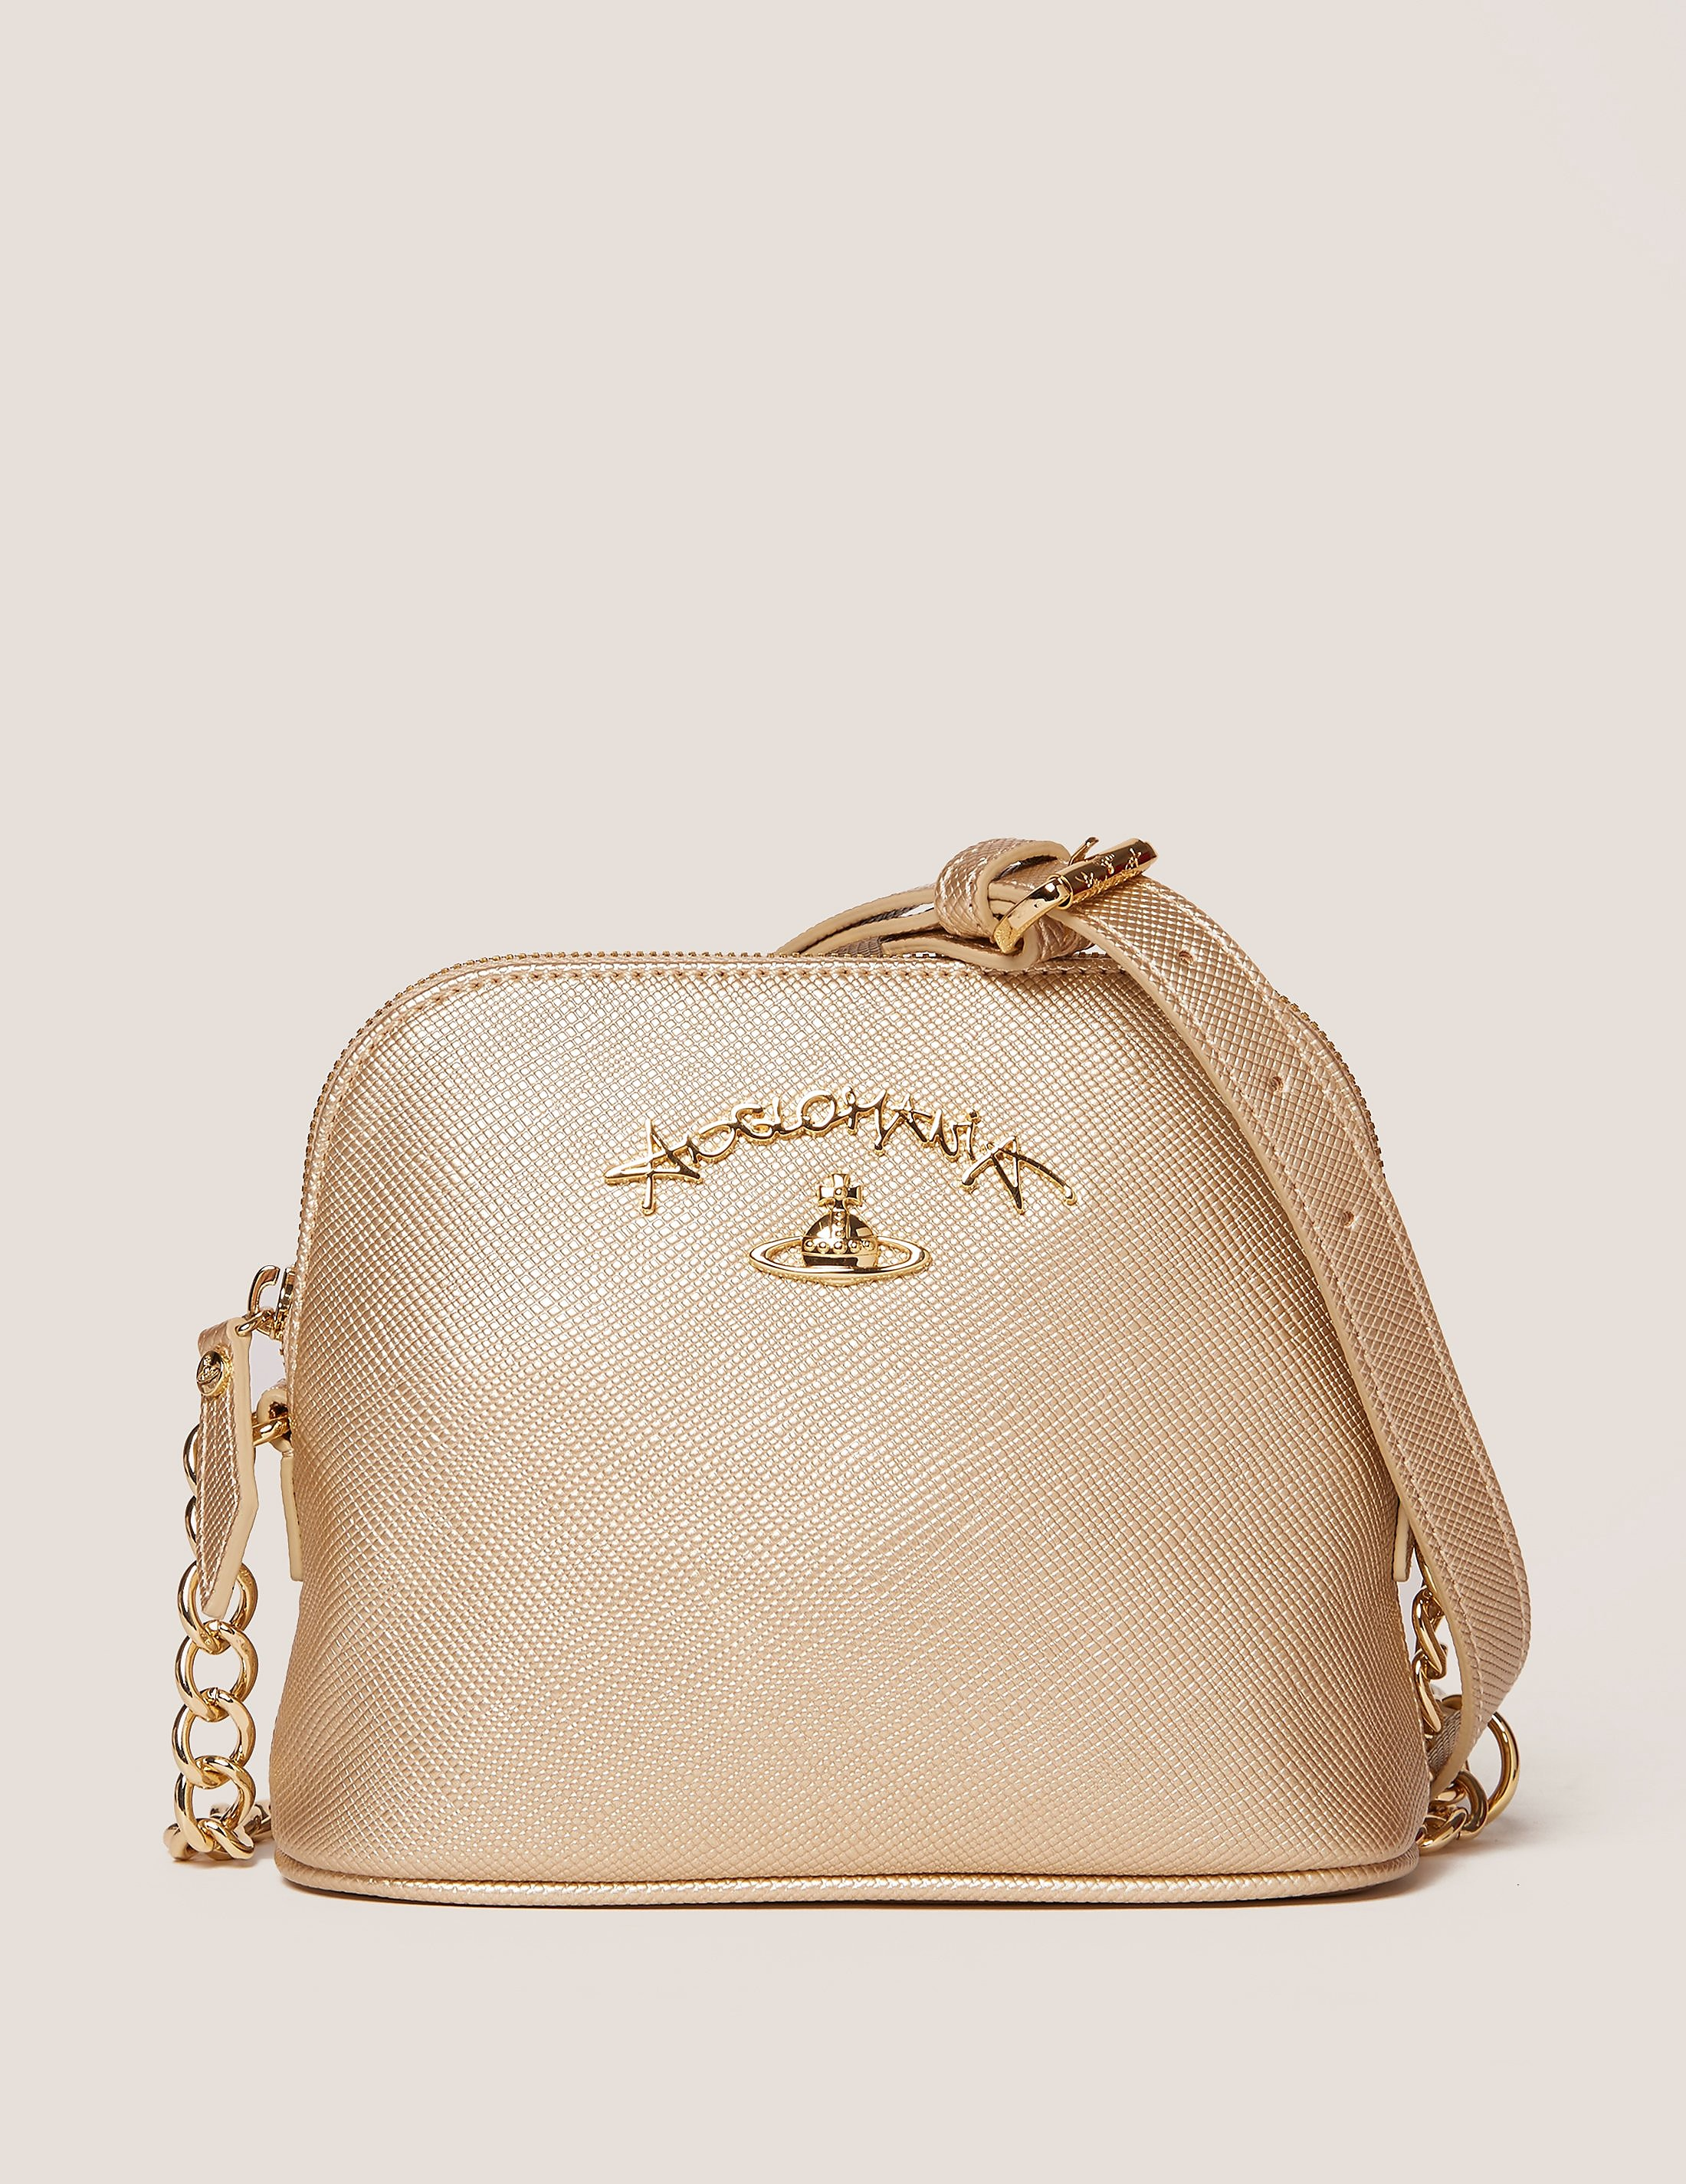 Vivienne Westwood Anglomania Divina Crossbody Bag